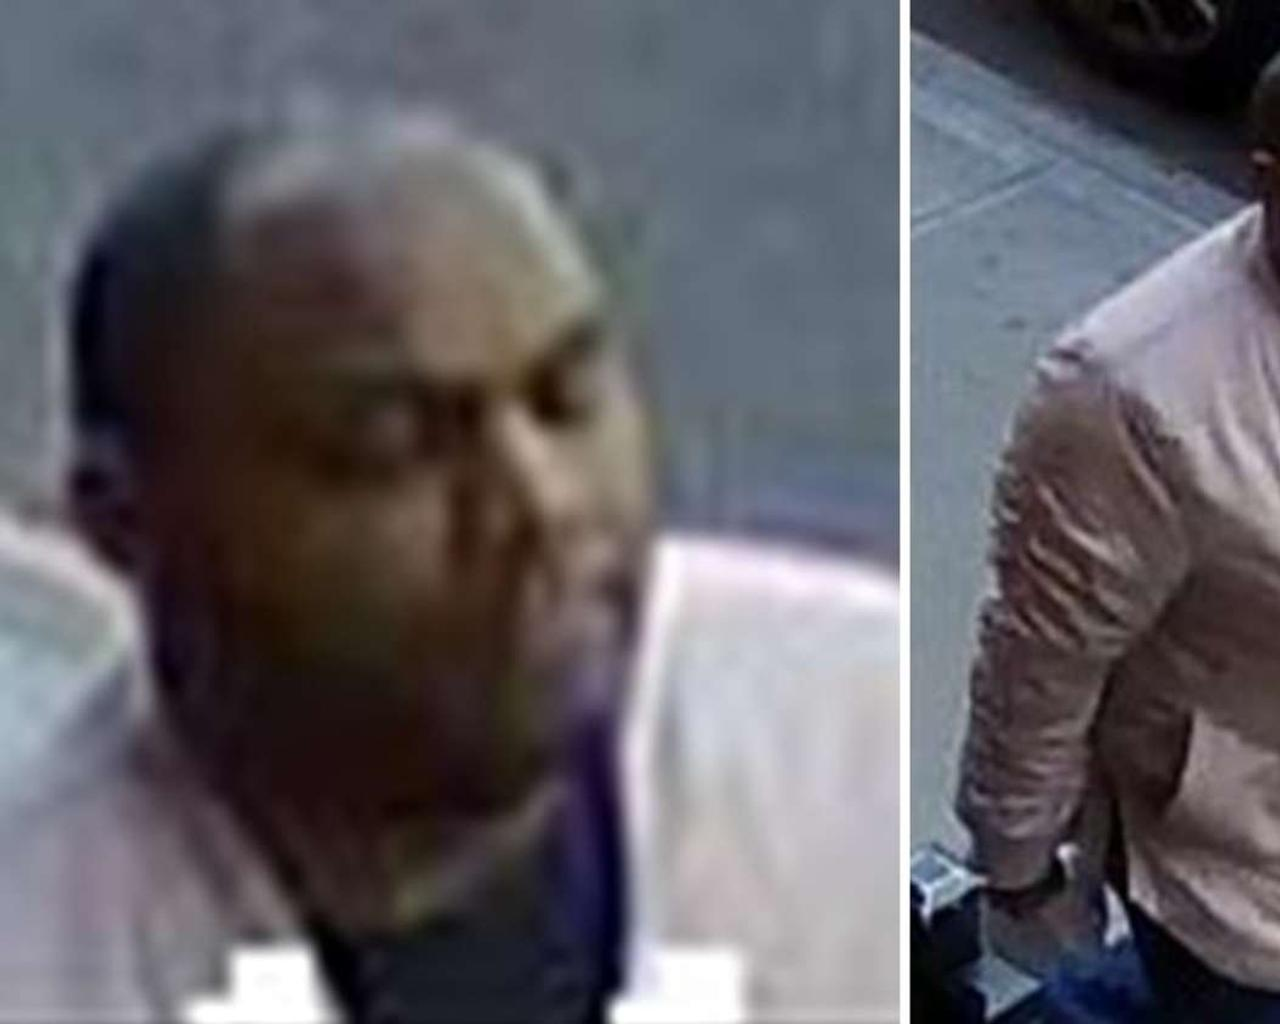 Police are searching for the attacker in a hate crime attack on a 65-year-old Asian woman